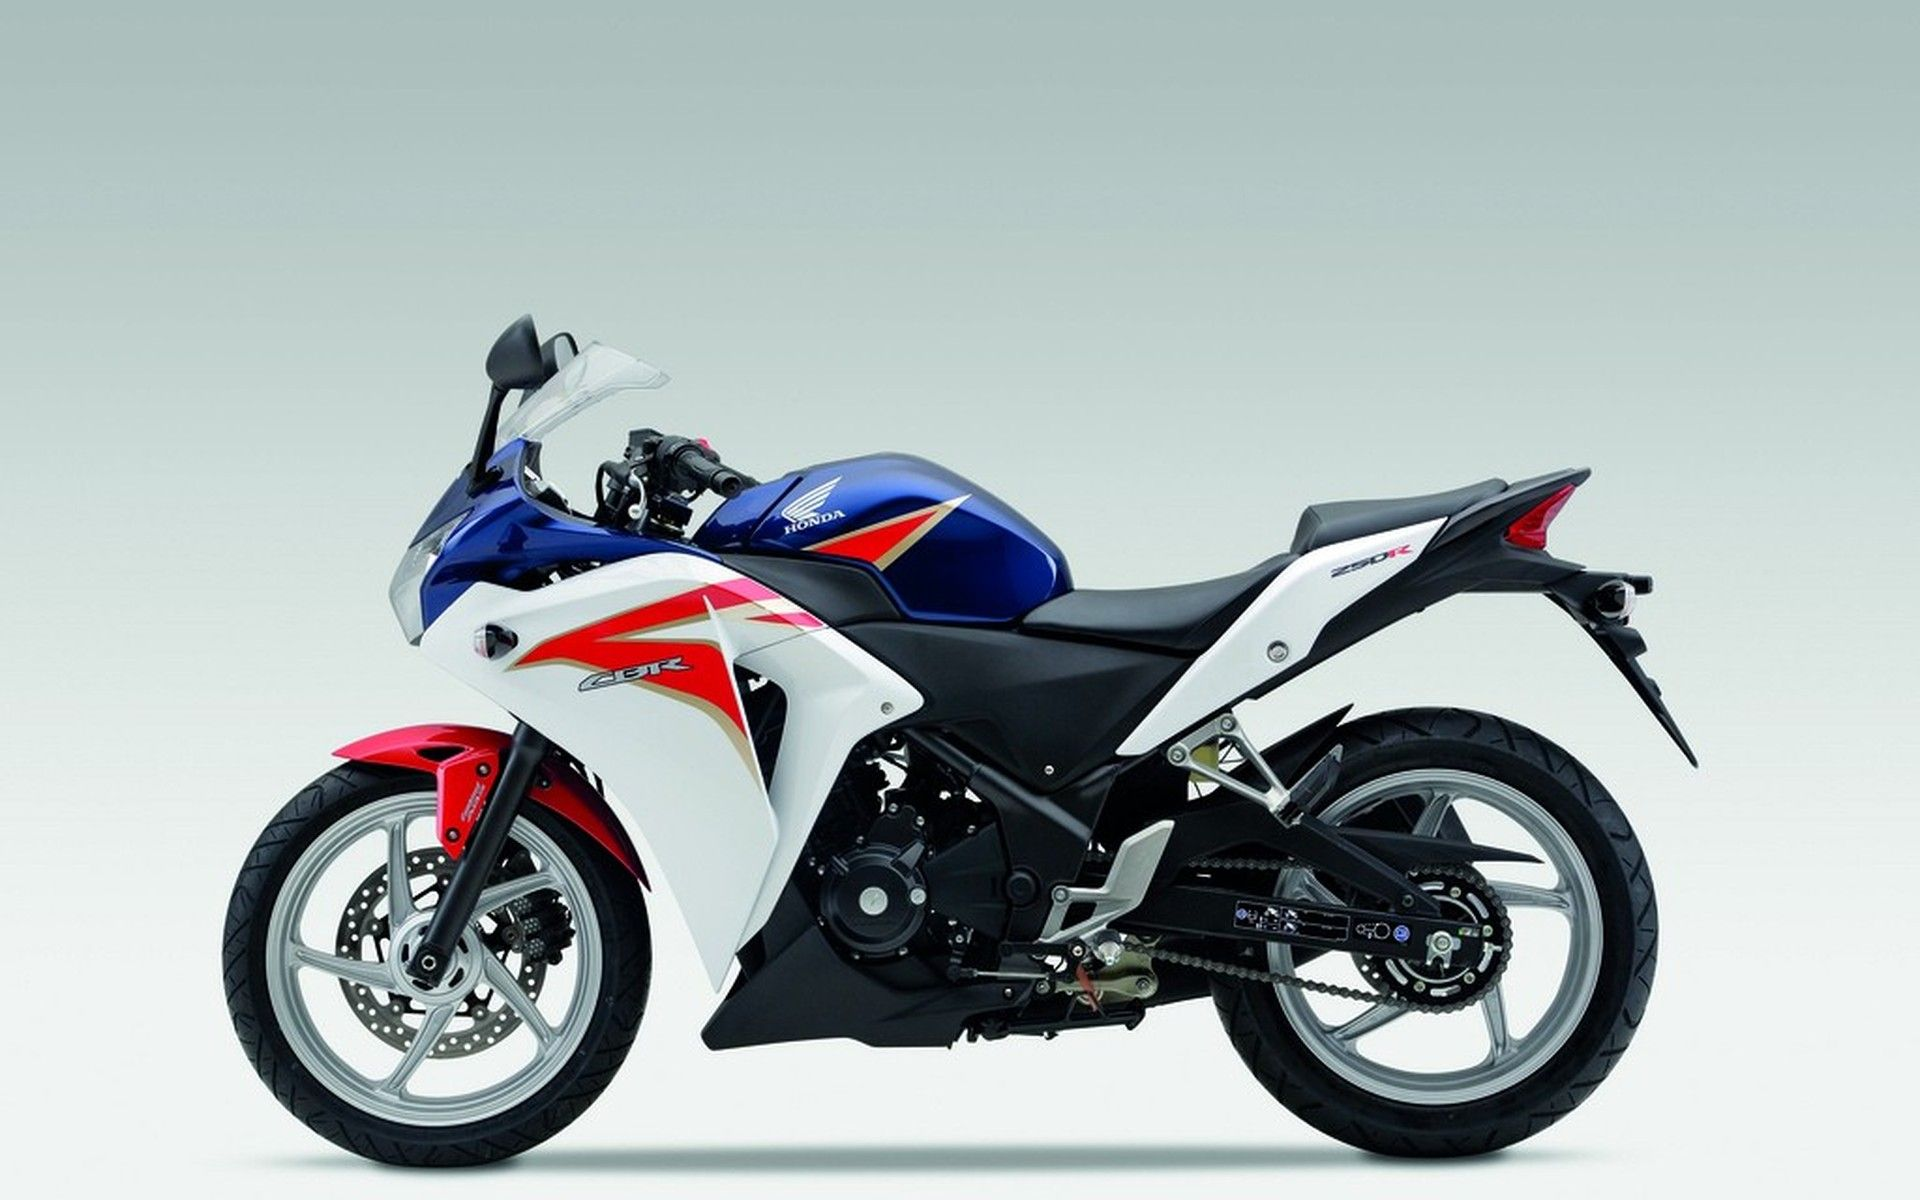 honda bike wallpapers 10 | honda bike wallpapers | pinterest | honda